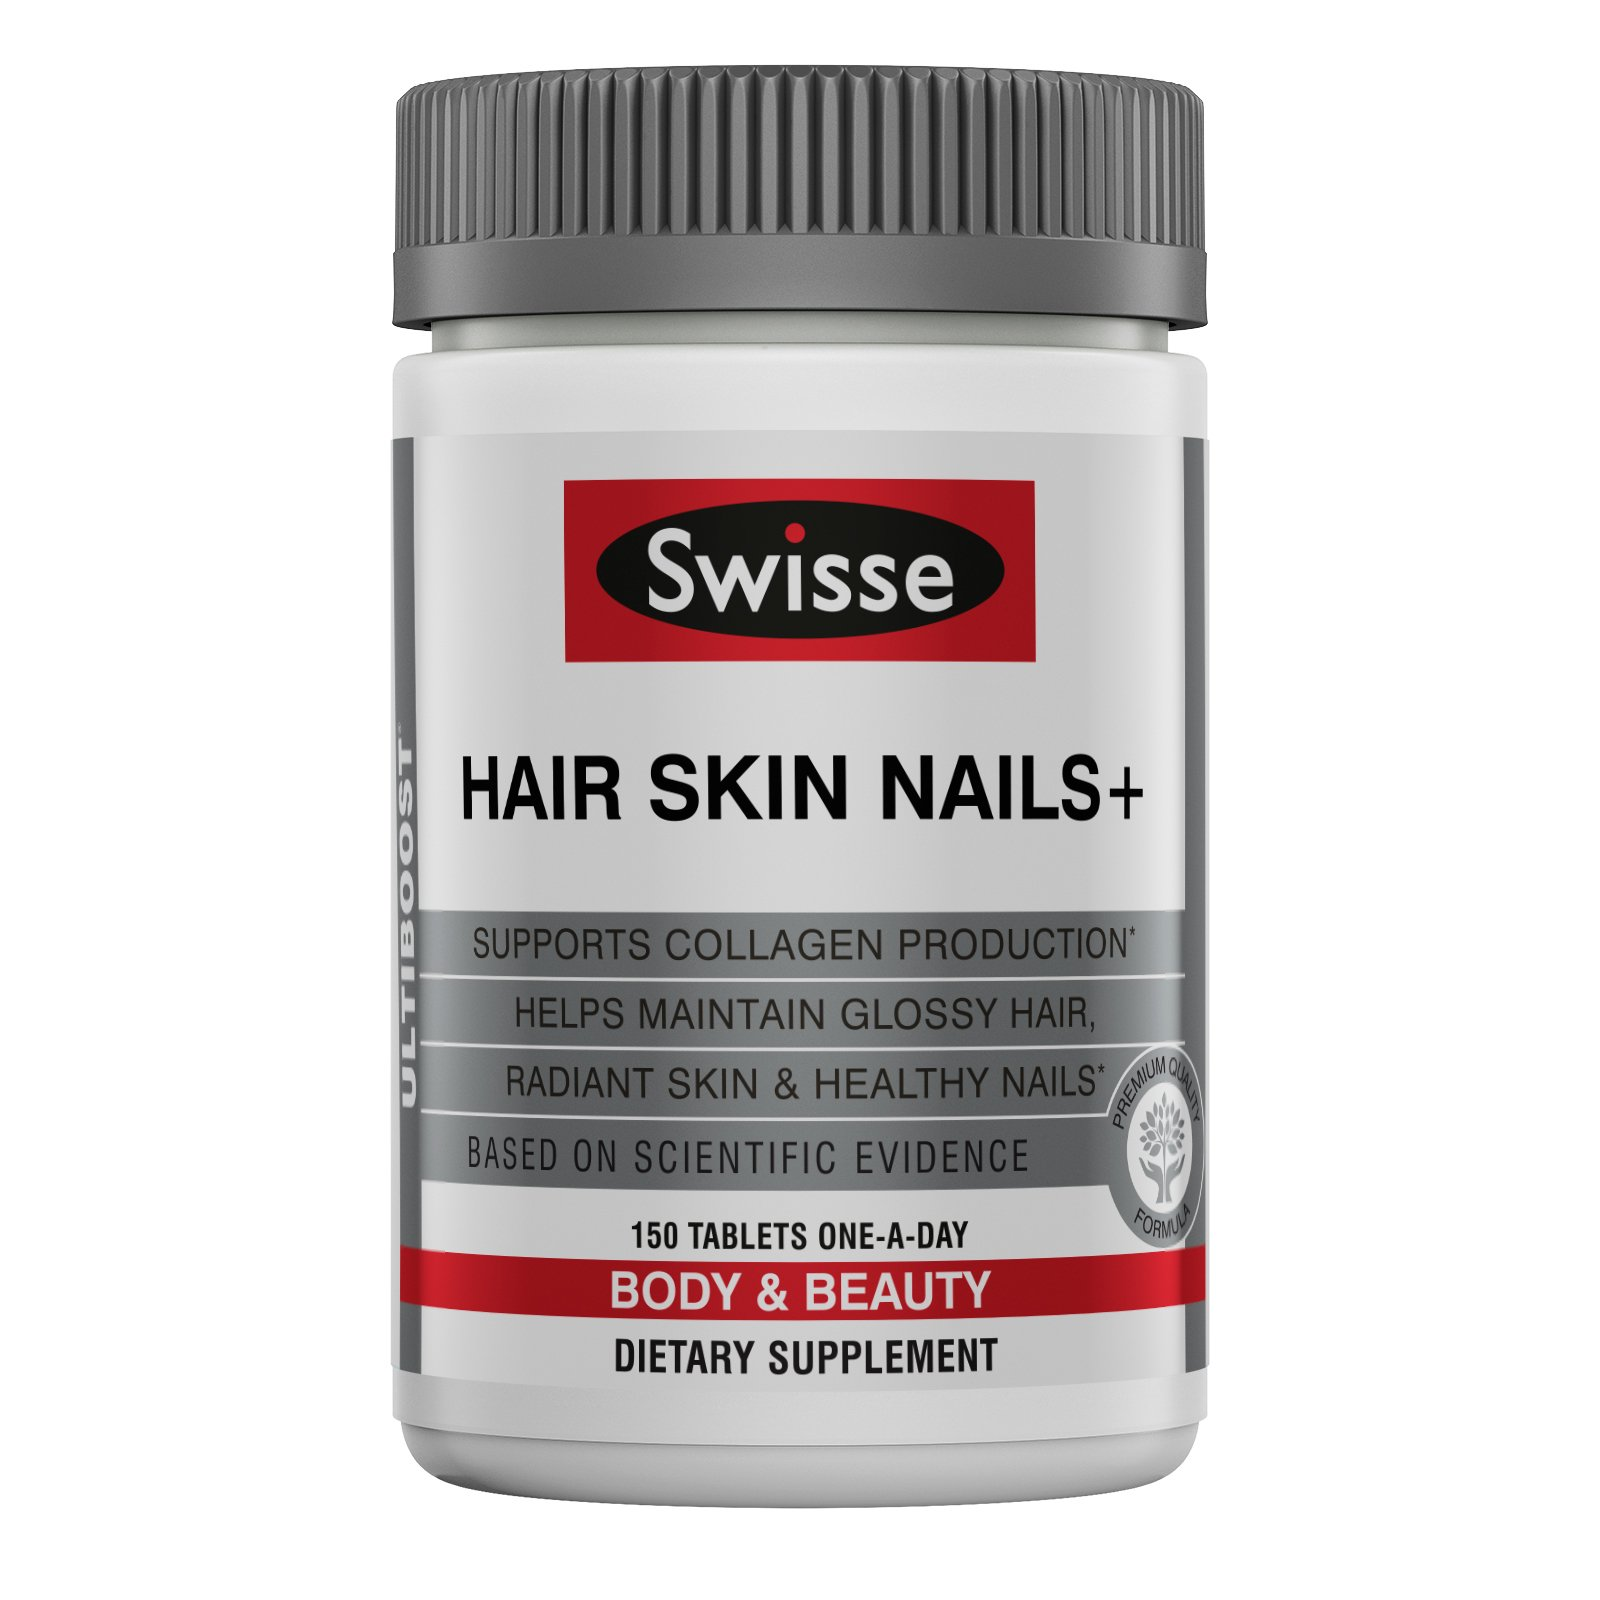 Swisse Ultiboost Hair Skin Nails Tablets, 150 Tablets, Beauty Formula, Contains Vitamin C, Iron, Zinc to Supports Collagen Production for  Healthy Hair, Skin and Nails*